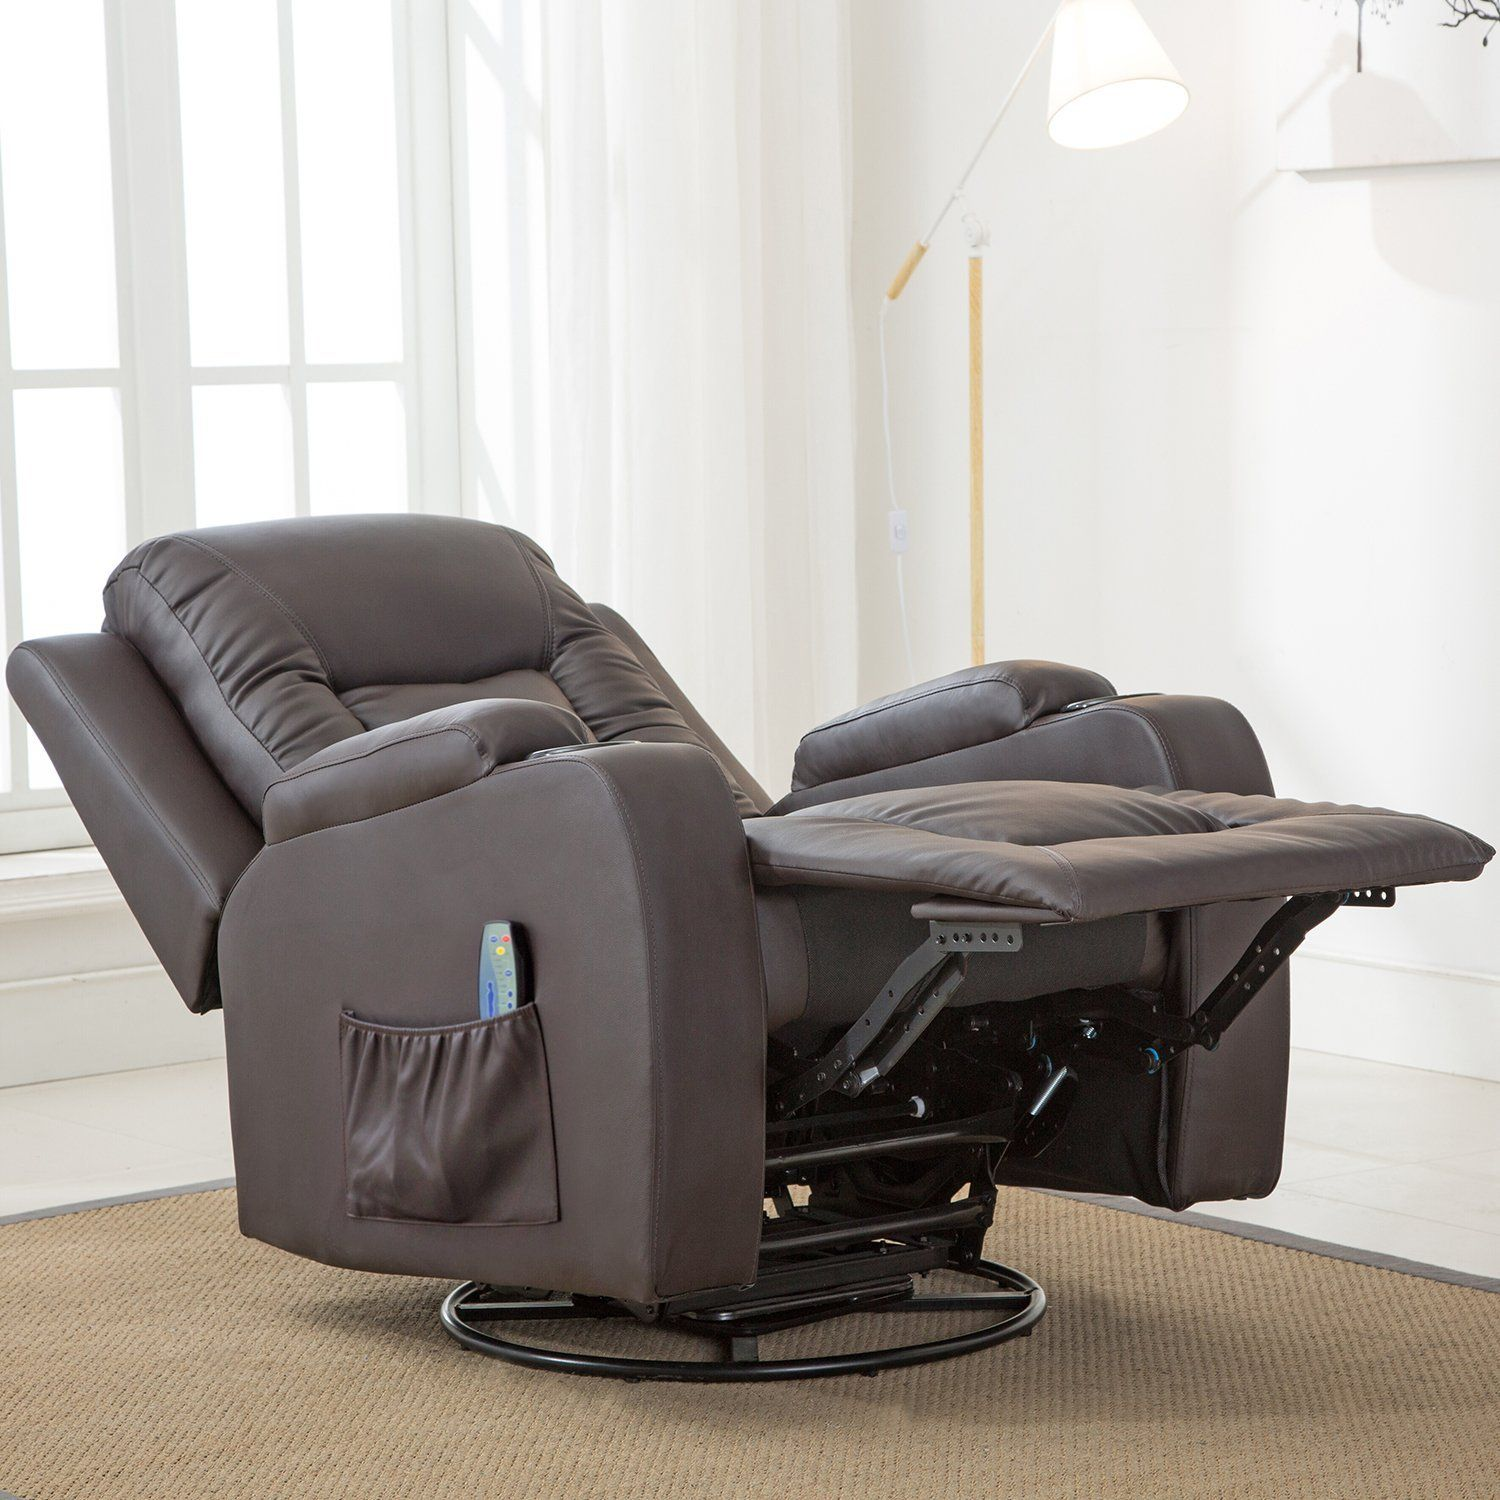 ComHoma Massage Recliner Chair Heated Modern Rocker